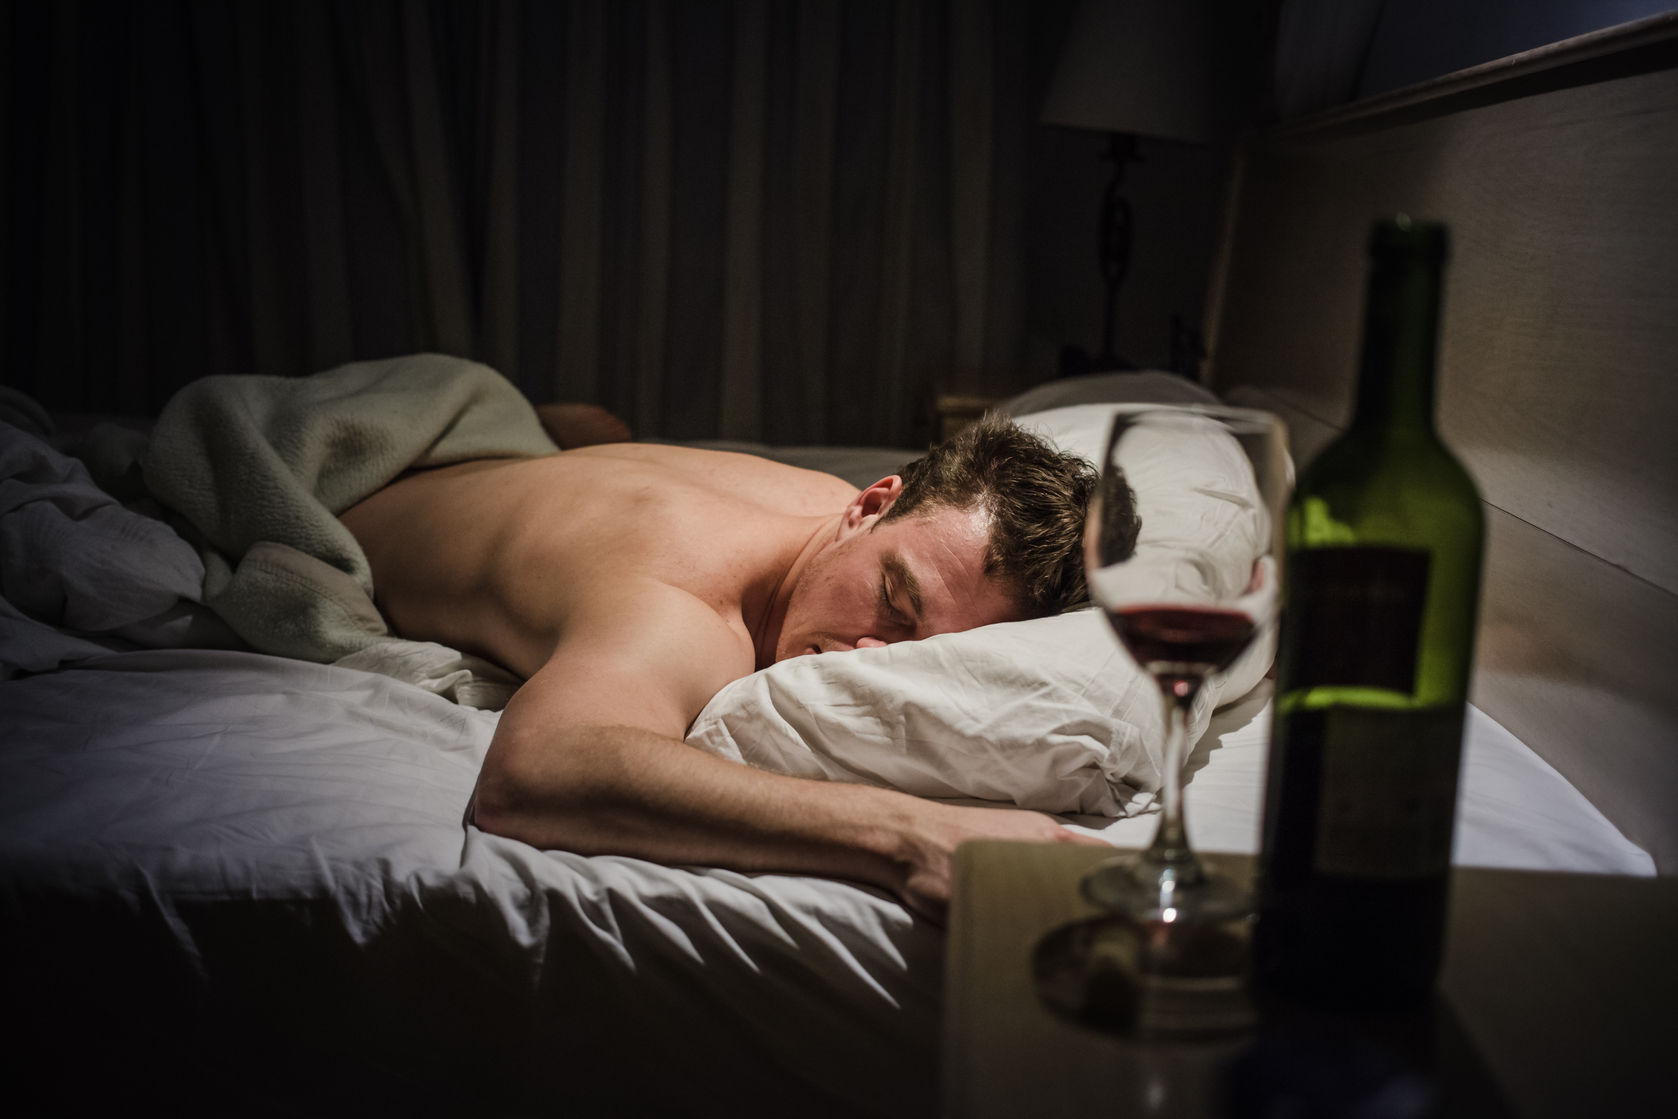 Lonely drunk man sleeping after a bottle of wine image